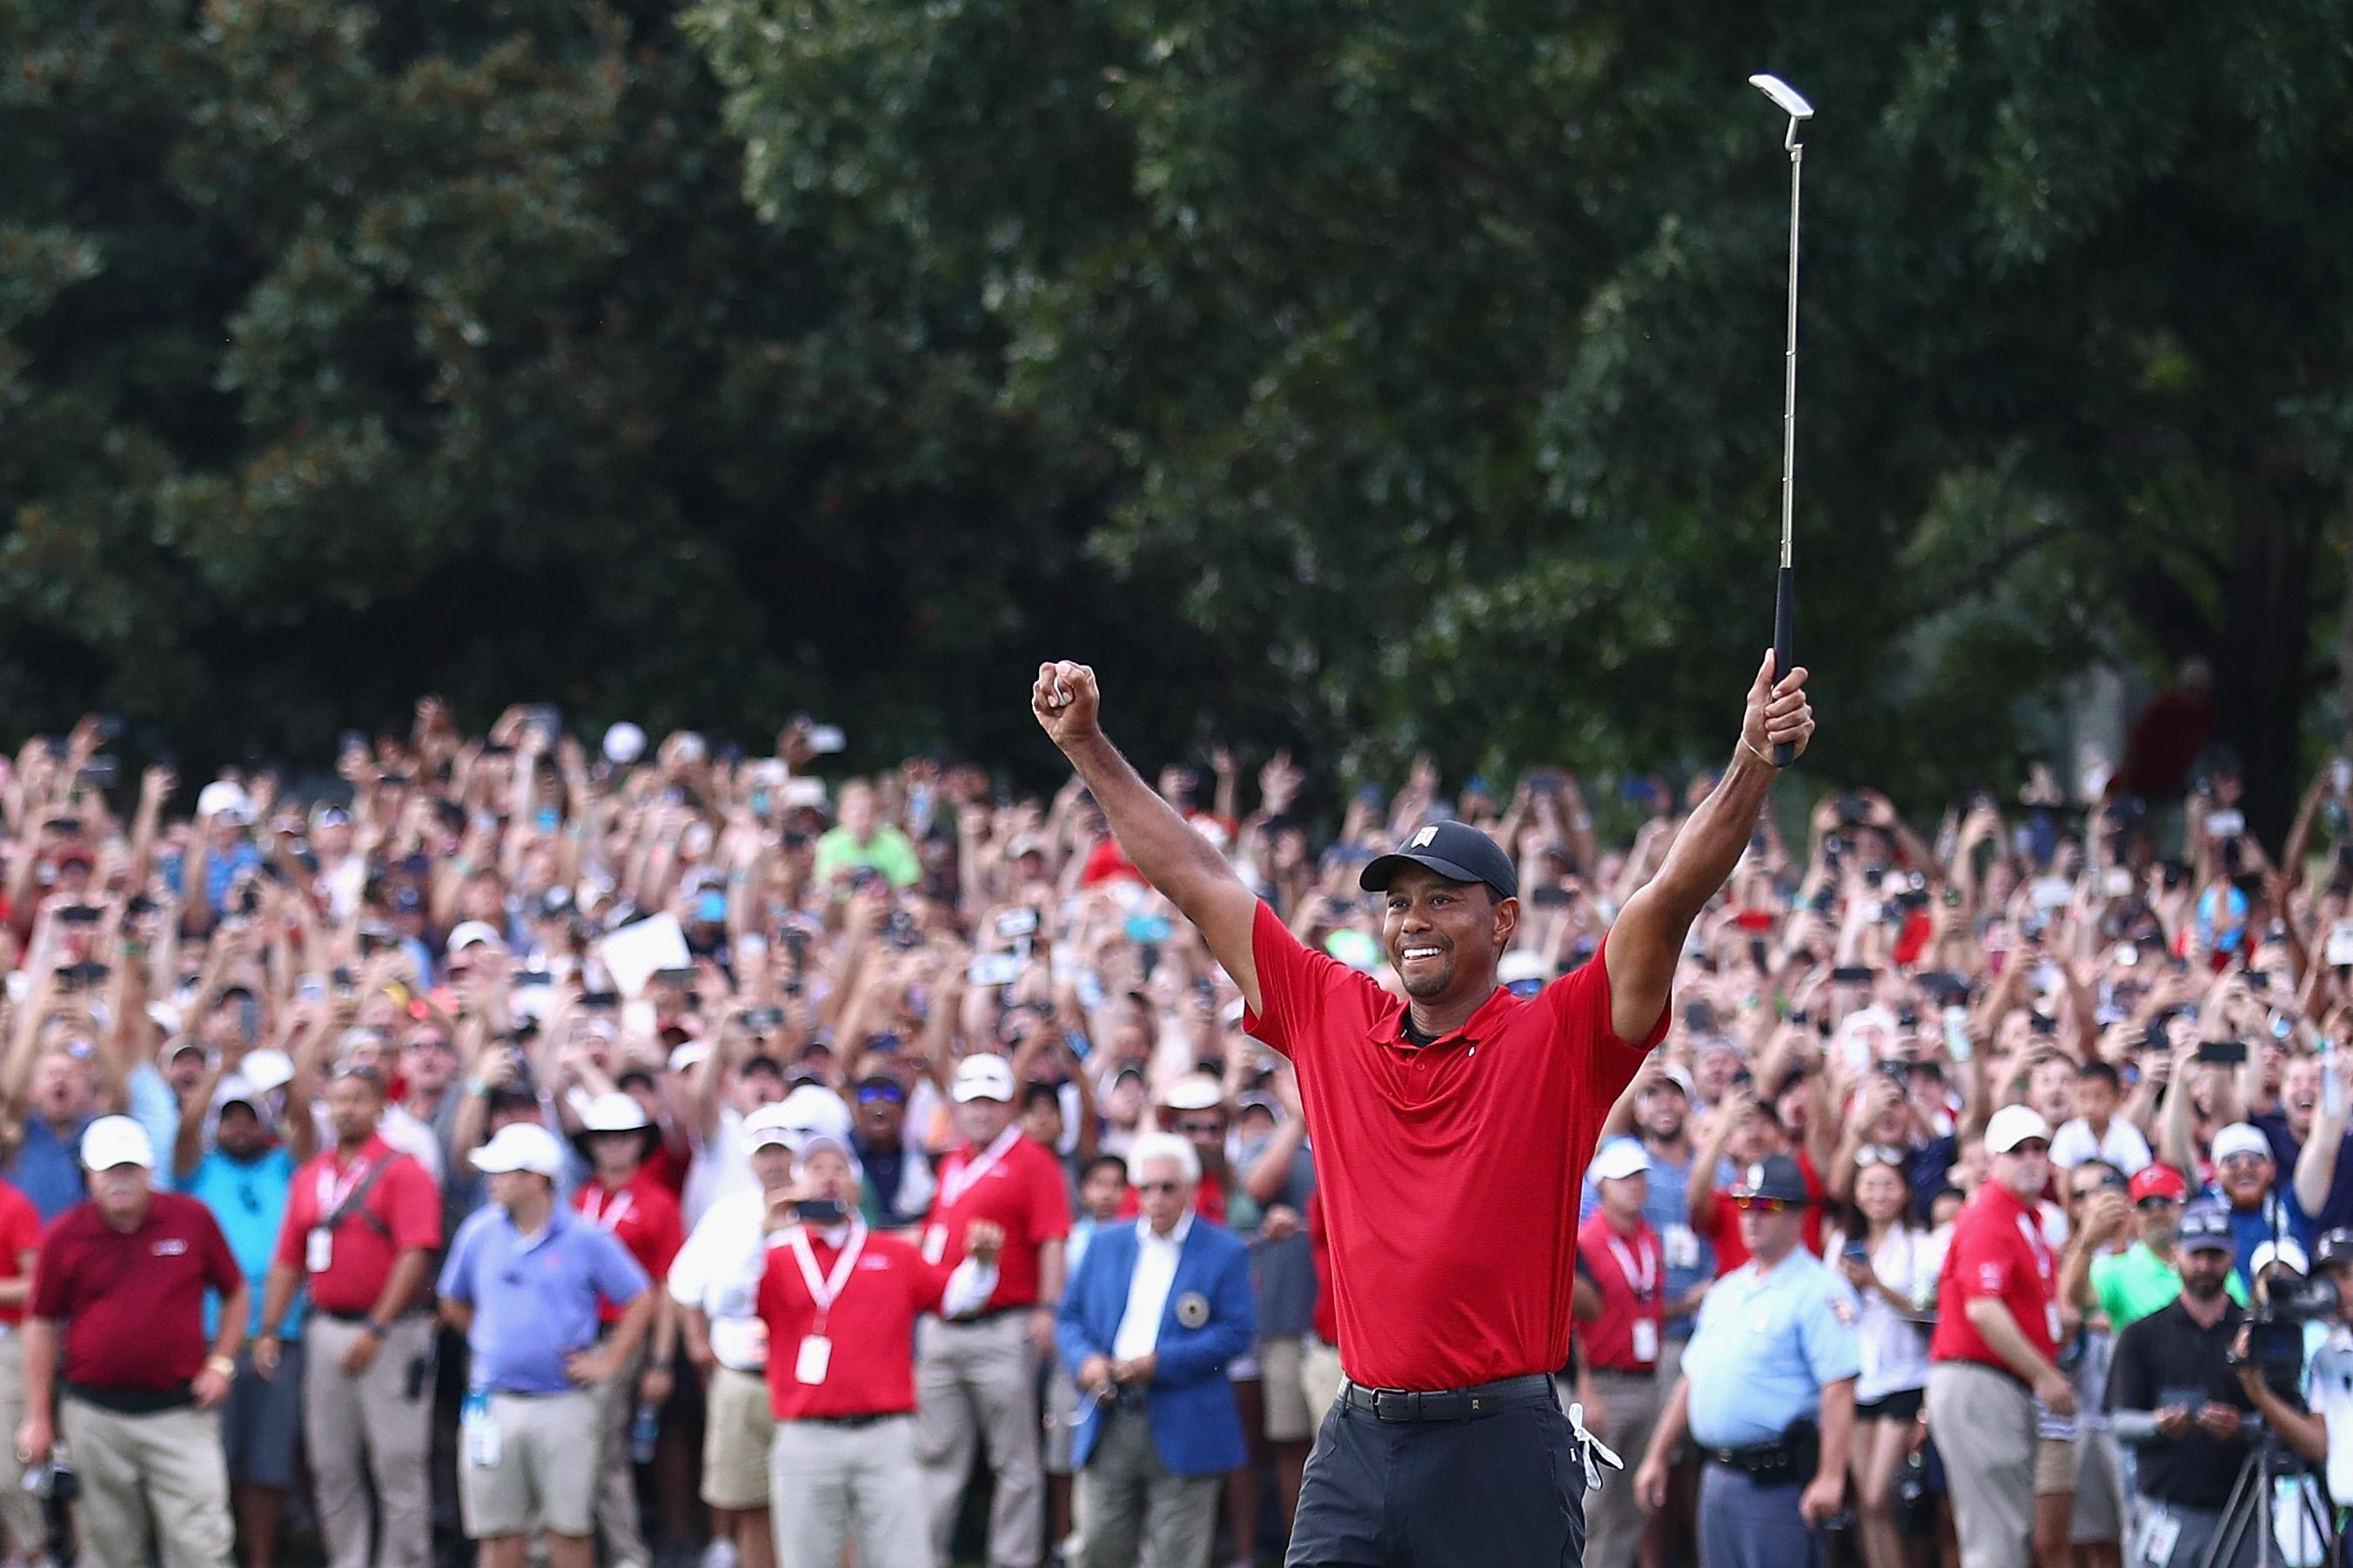 slate.com - Jim Newell - With His First Win in Five Years, Tiger Woods Just Capped Maybe the Greatest Comeback in Sports